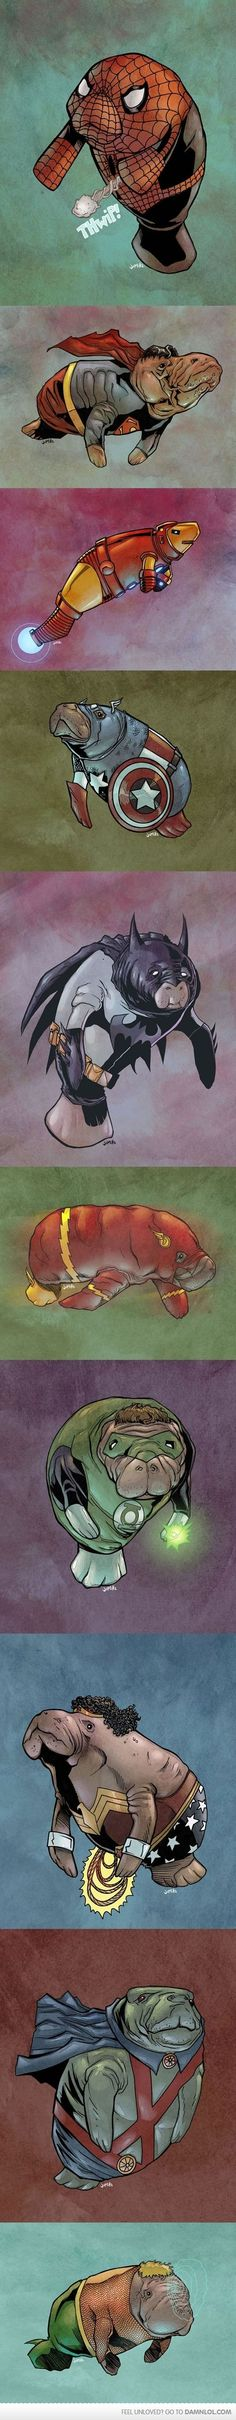 Manatee superheroes! Saving the world with cuteness!   # Pinterest++ for iPad #